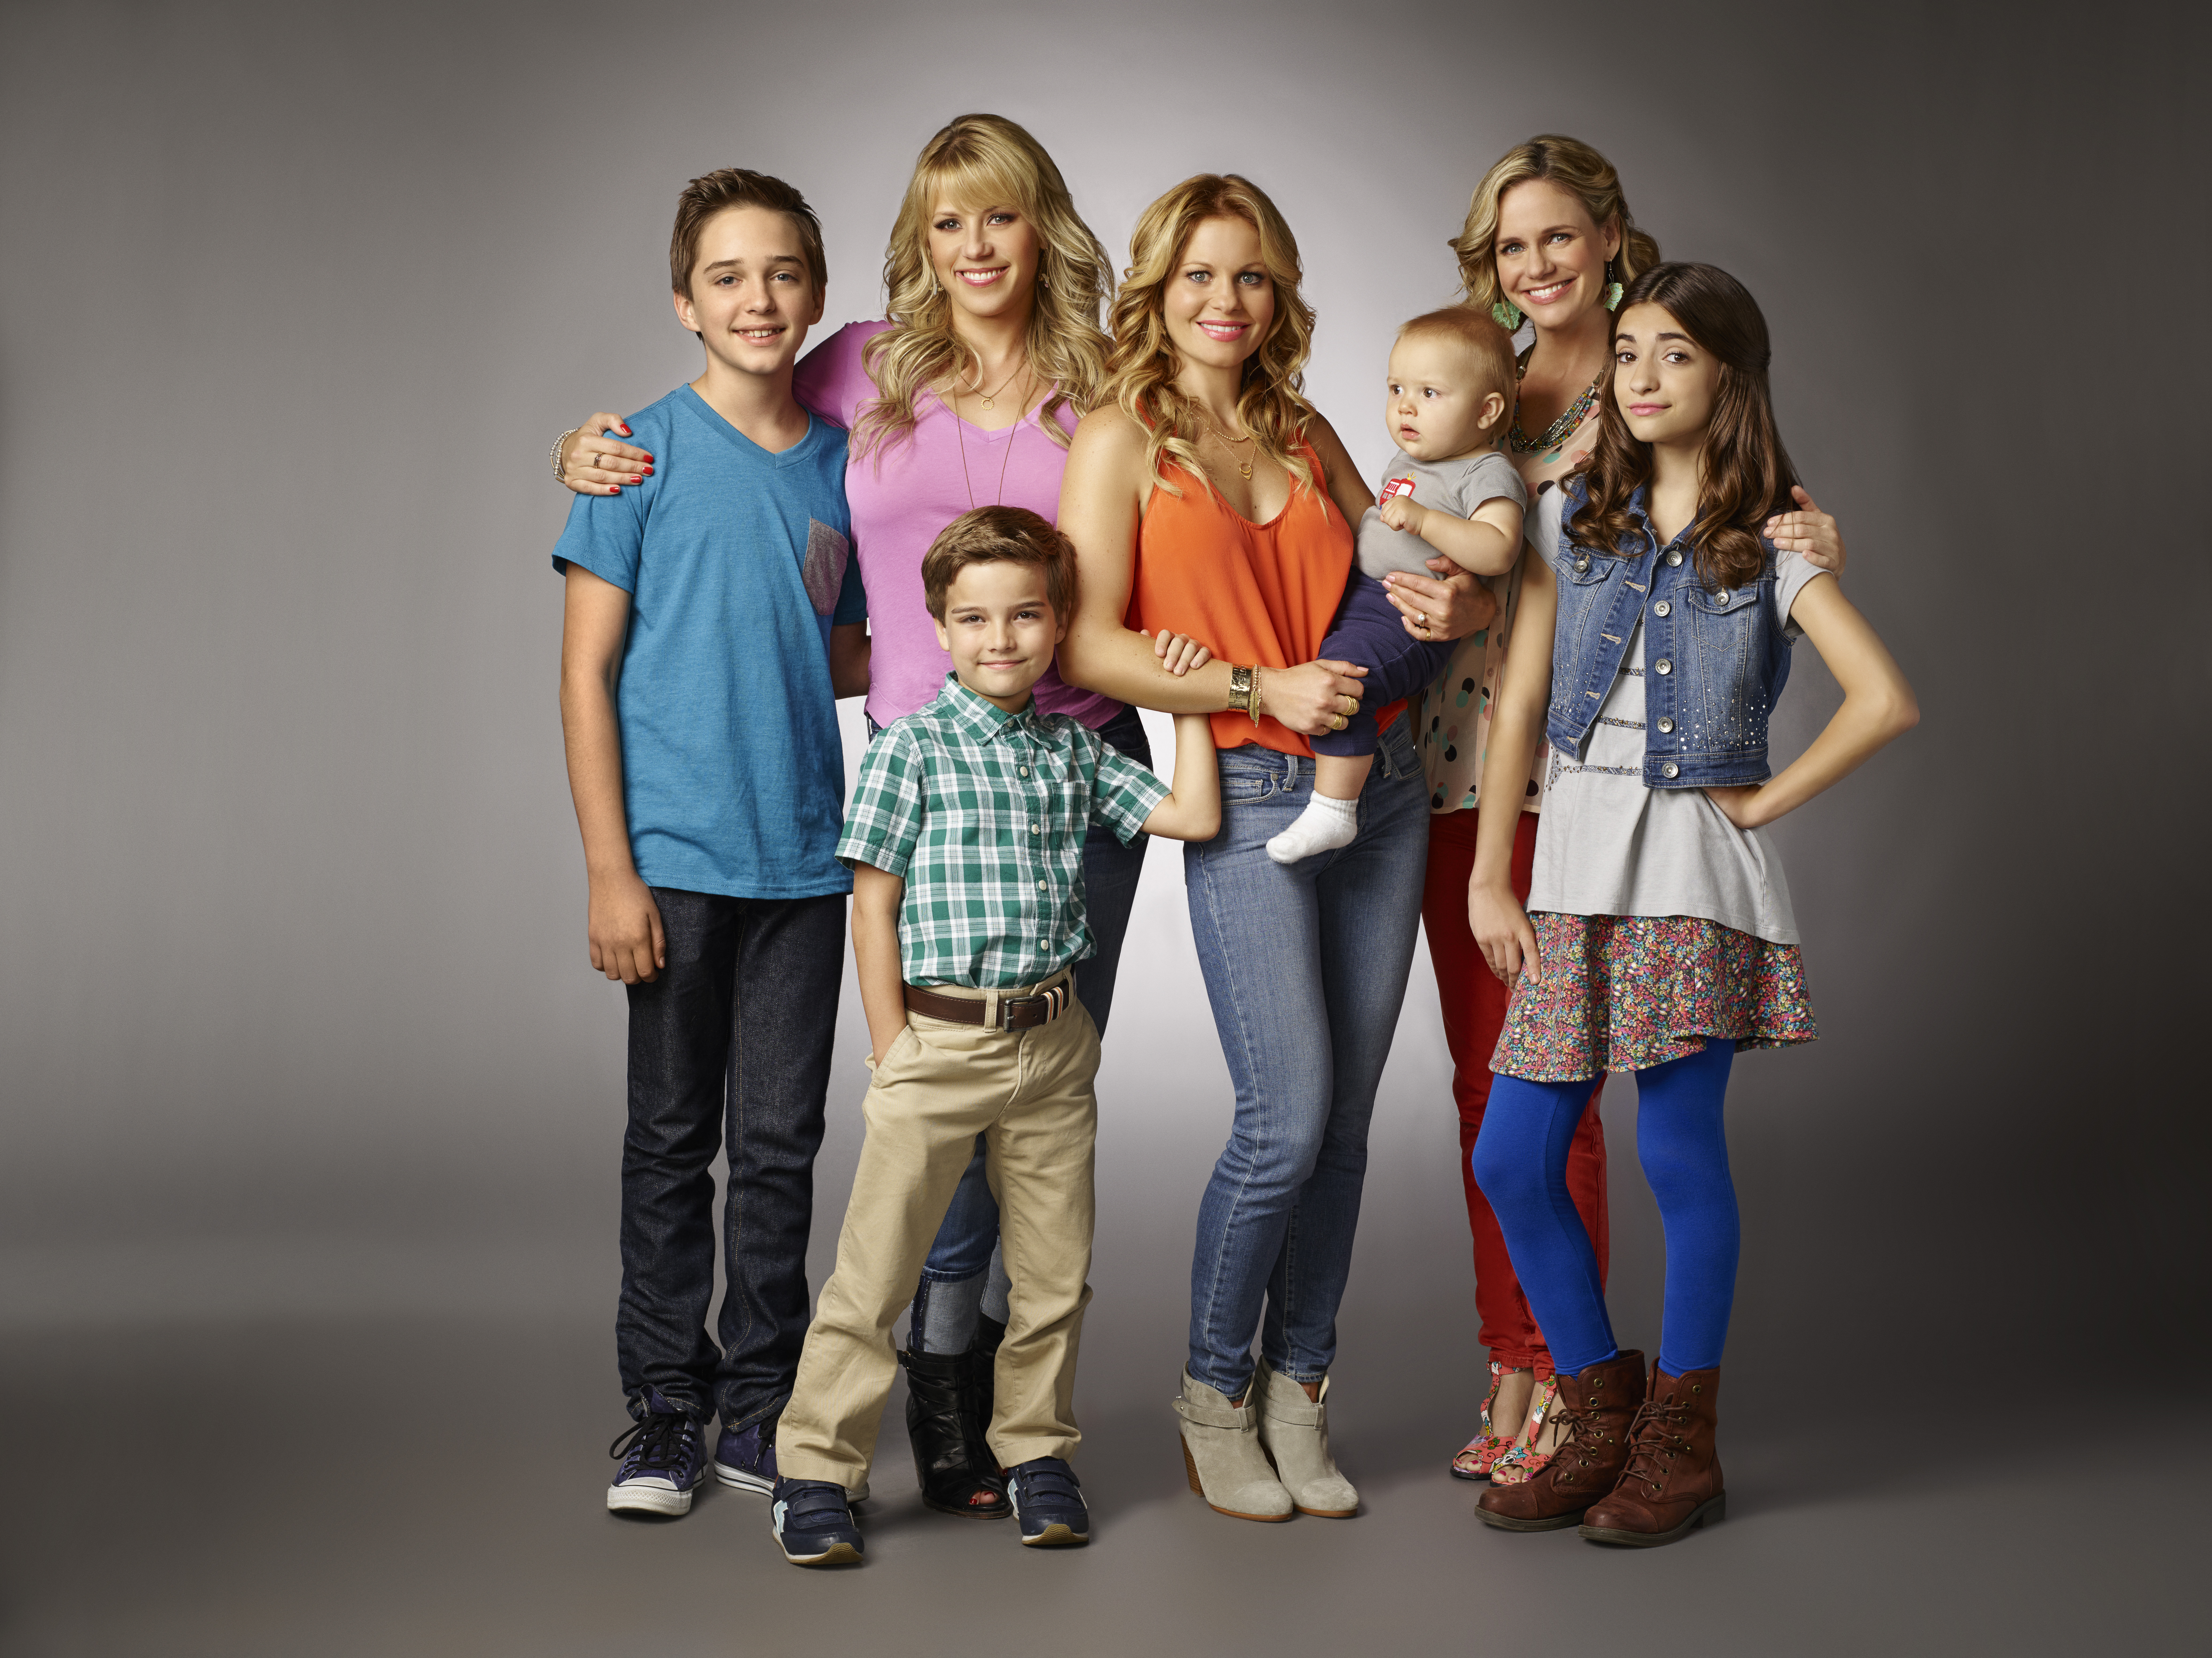 d j tanner s sons on fuller house jackson max tommy are bringing a new generation to life